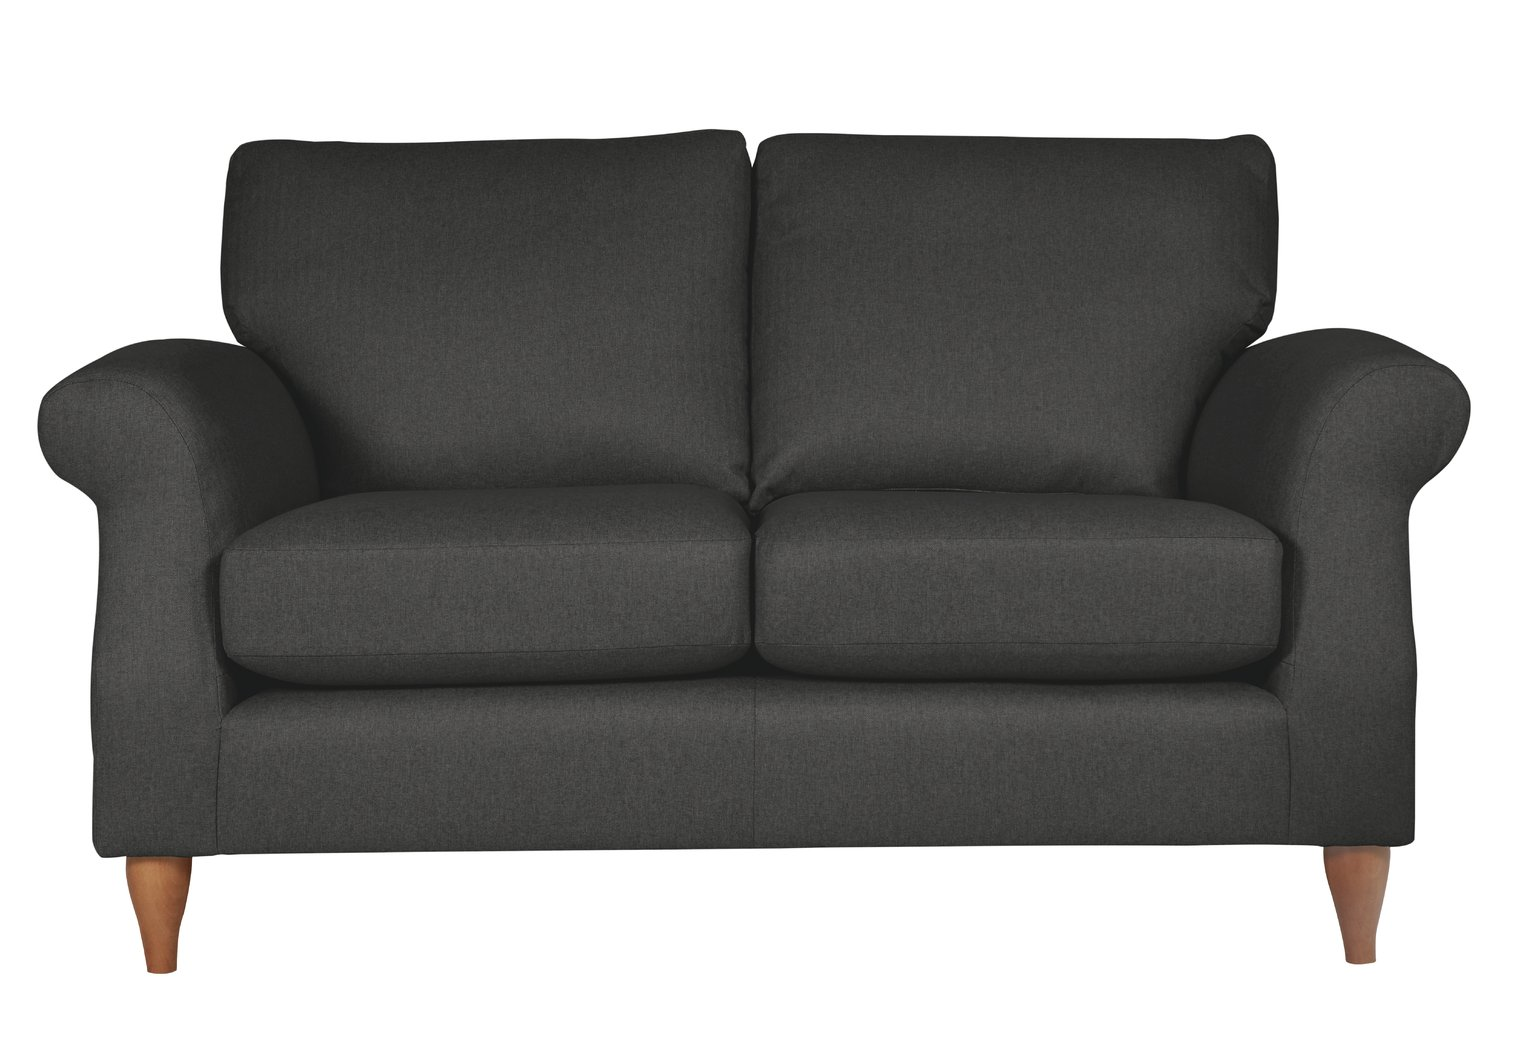 Argos Home Bude 2 Seater Fabric Sofa - Charcoal